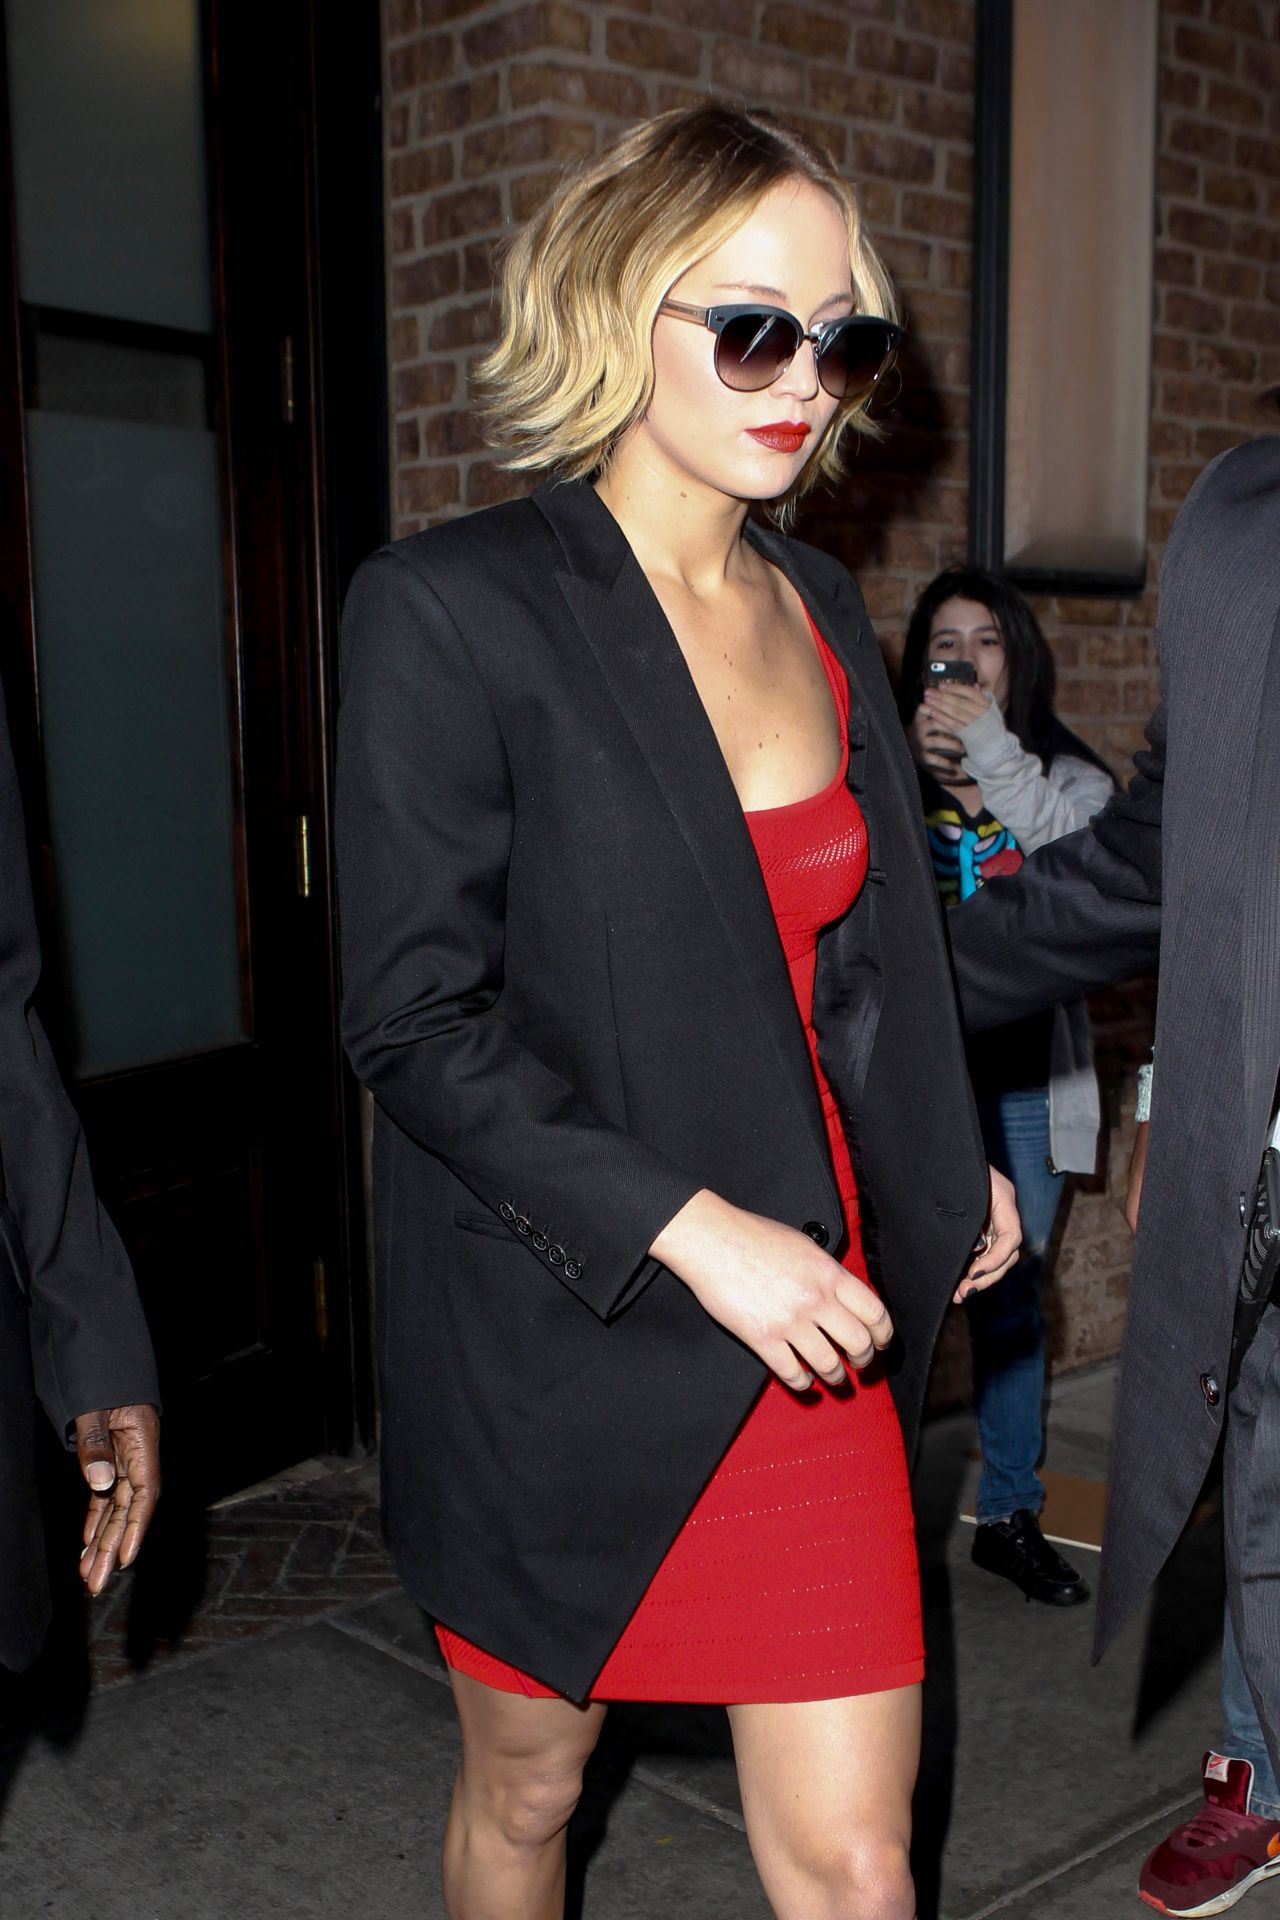 jennifer-lawrence-arriving-to-appear-on-late-show-with-david-letterman-in-new-york-city-nov.-2014_3